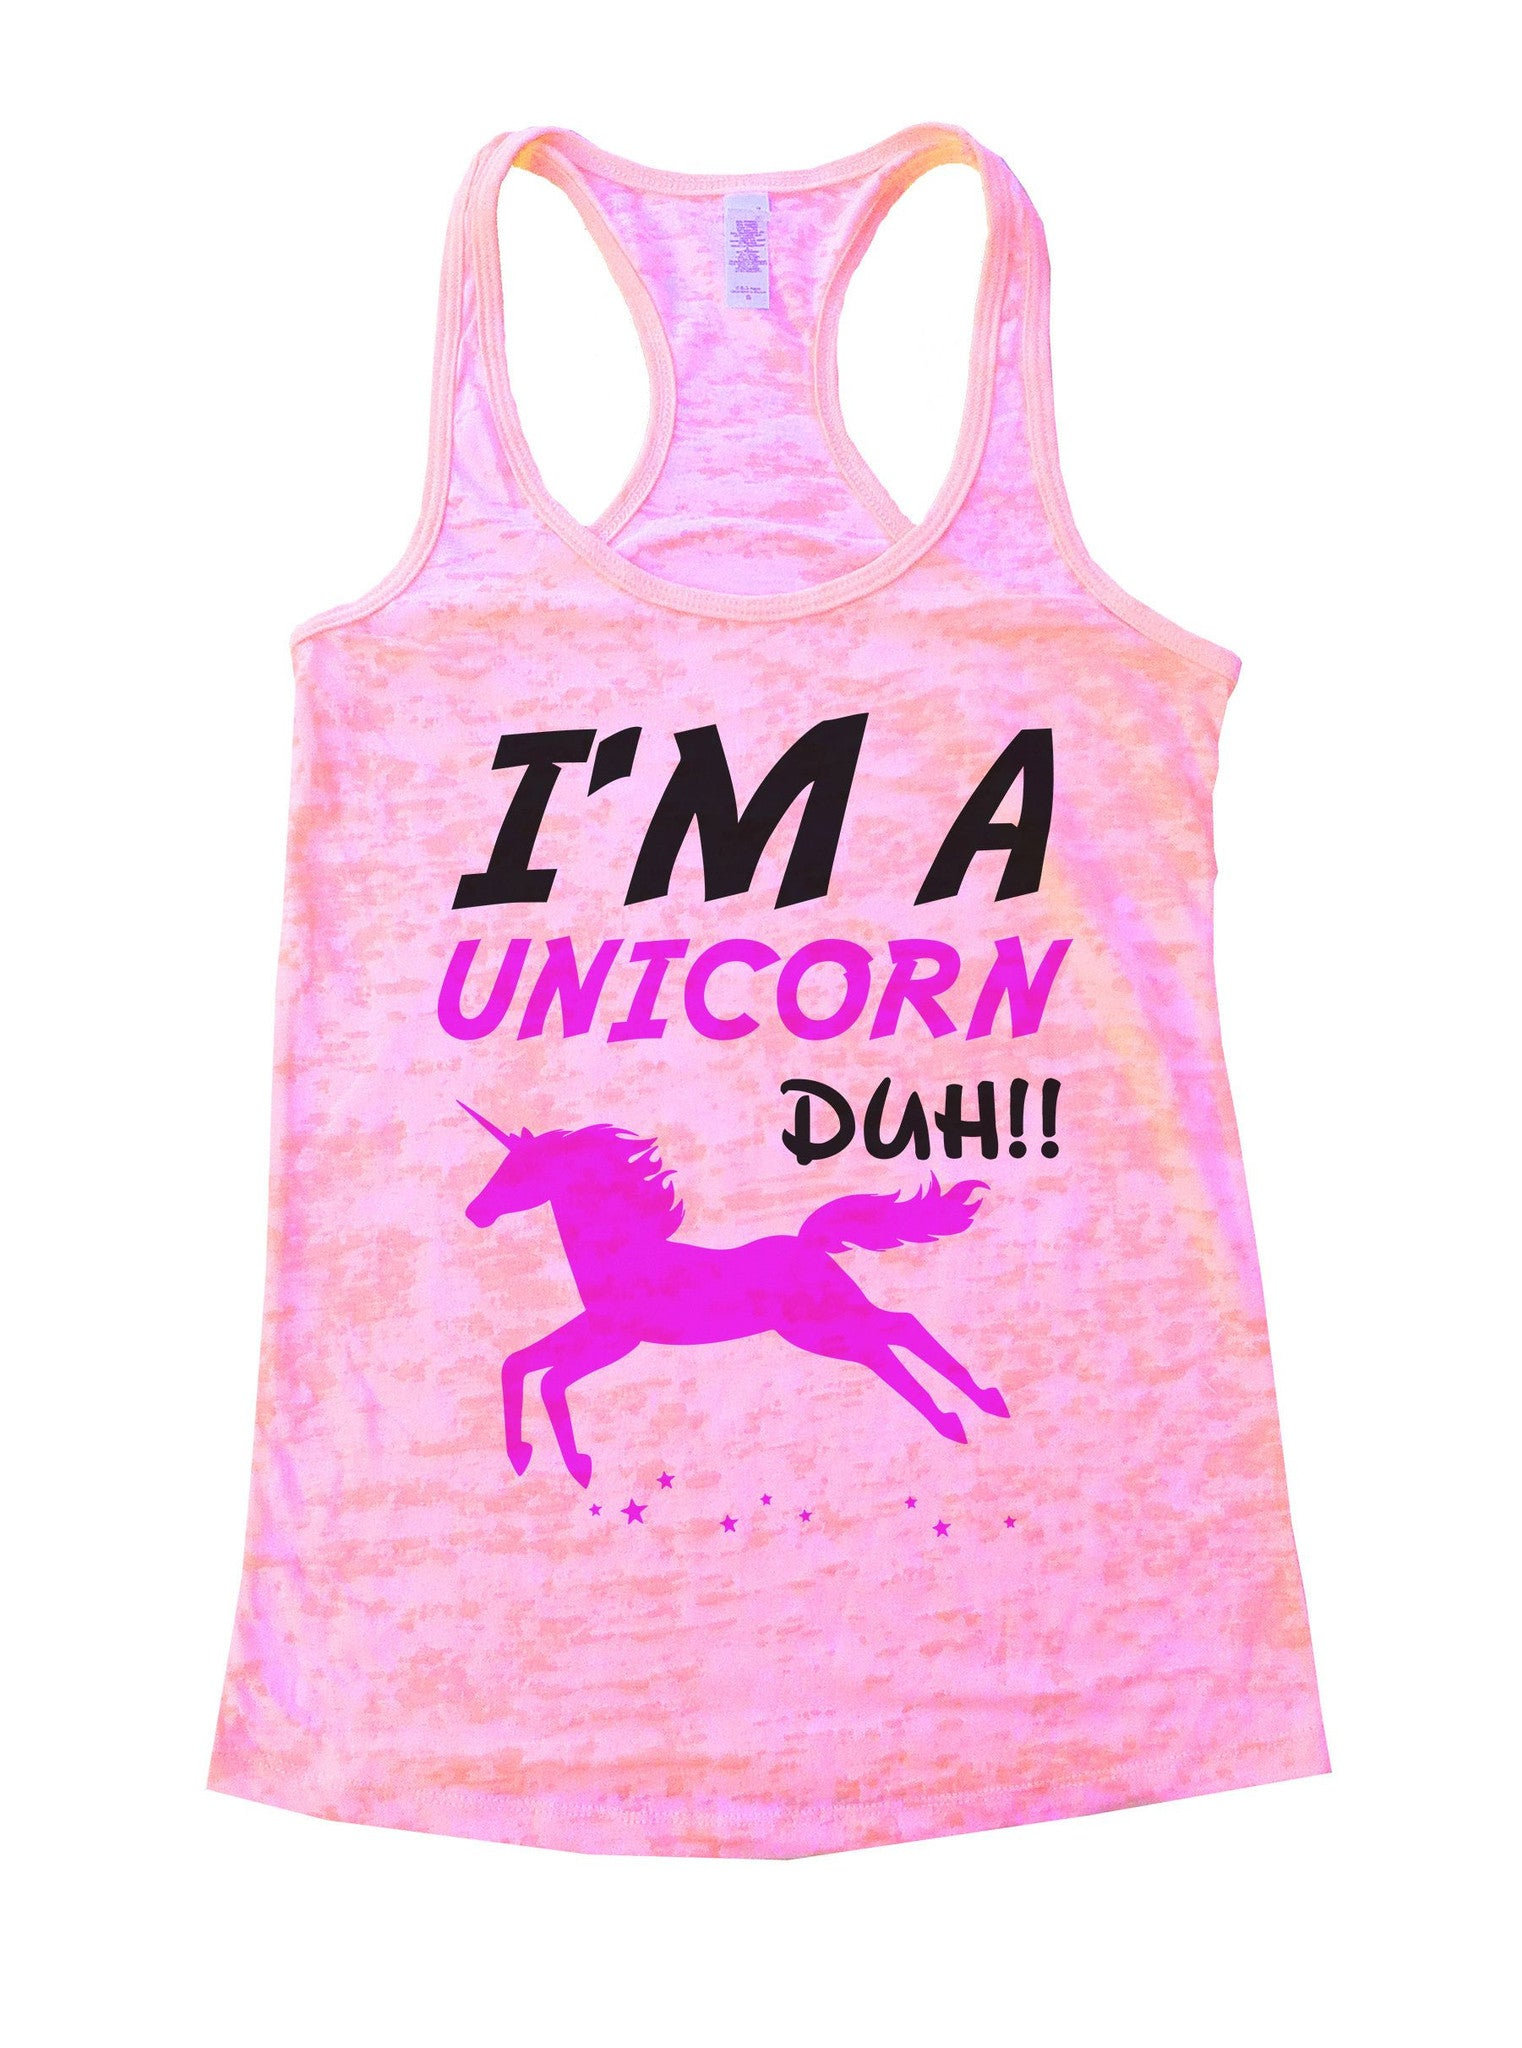 I'm A Unicorn Duh Burnout Tank Top By BurnoutTankTops.com - 795 - Funny Shirts Tank Tops Burnouts and Triblends  - 1